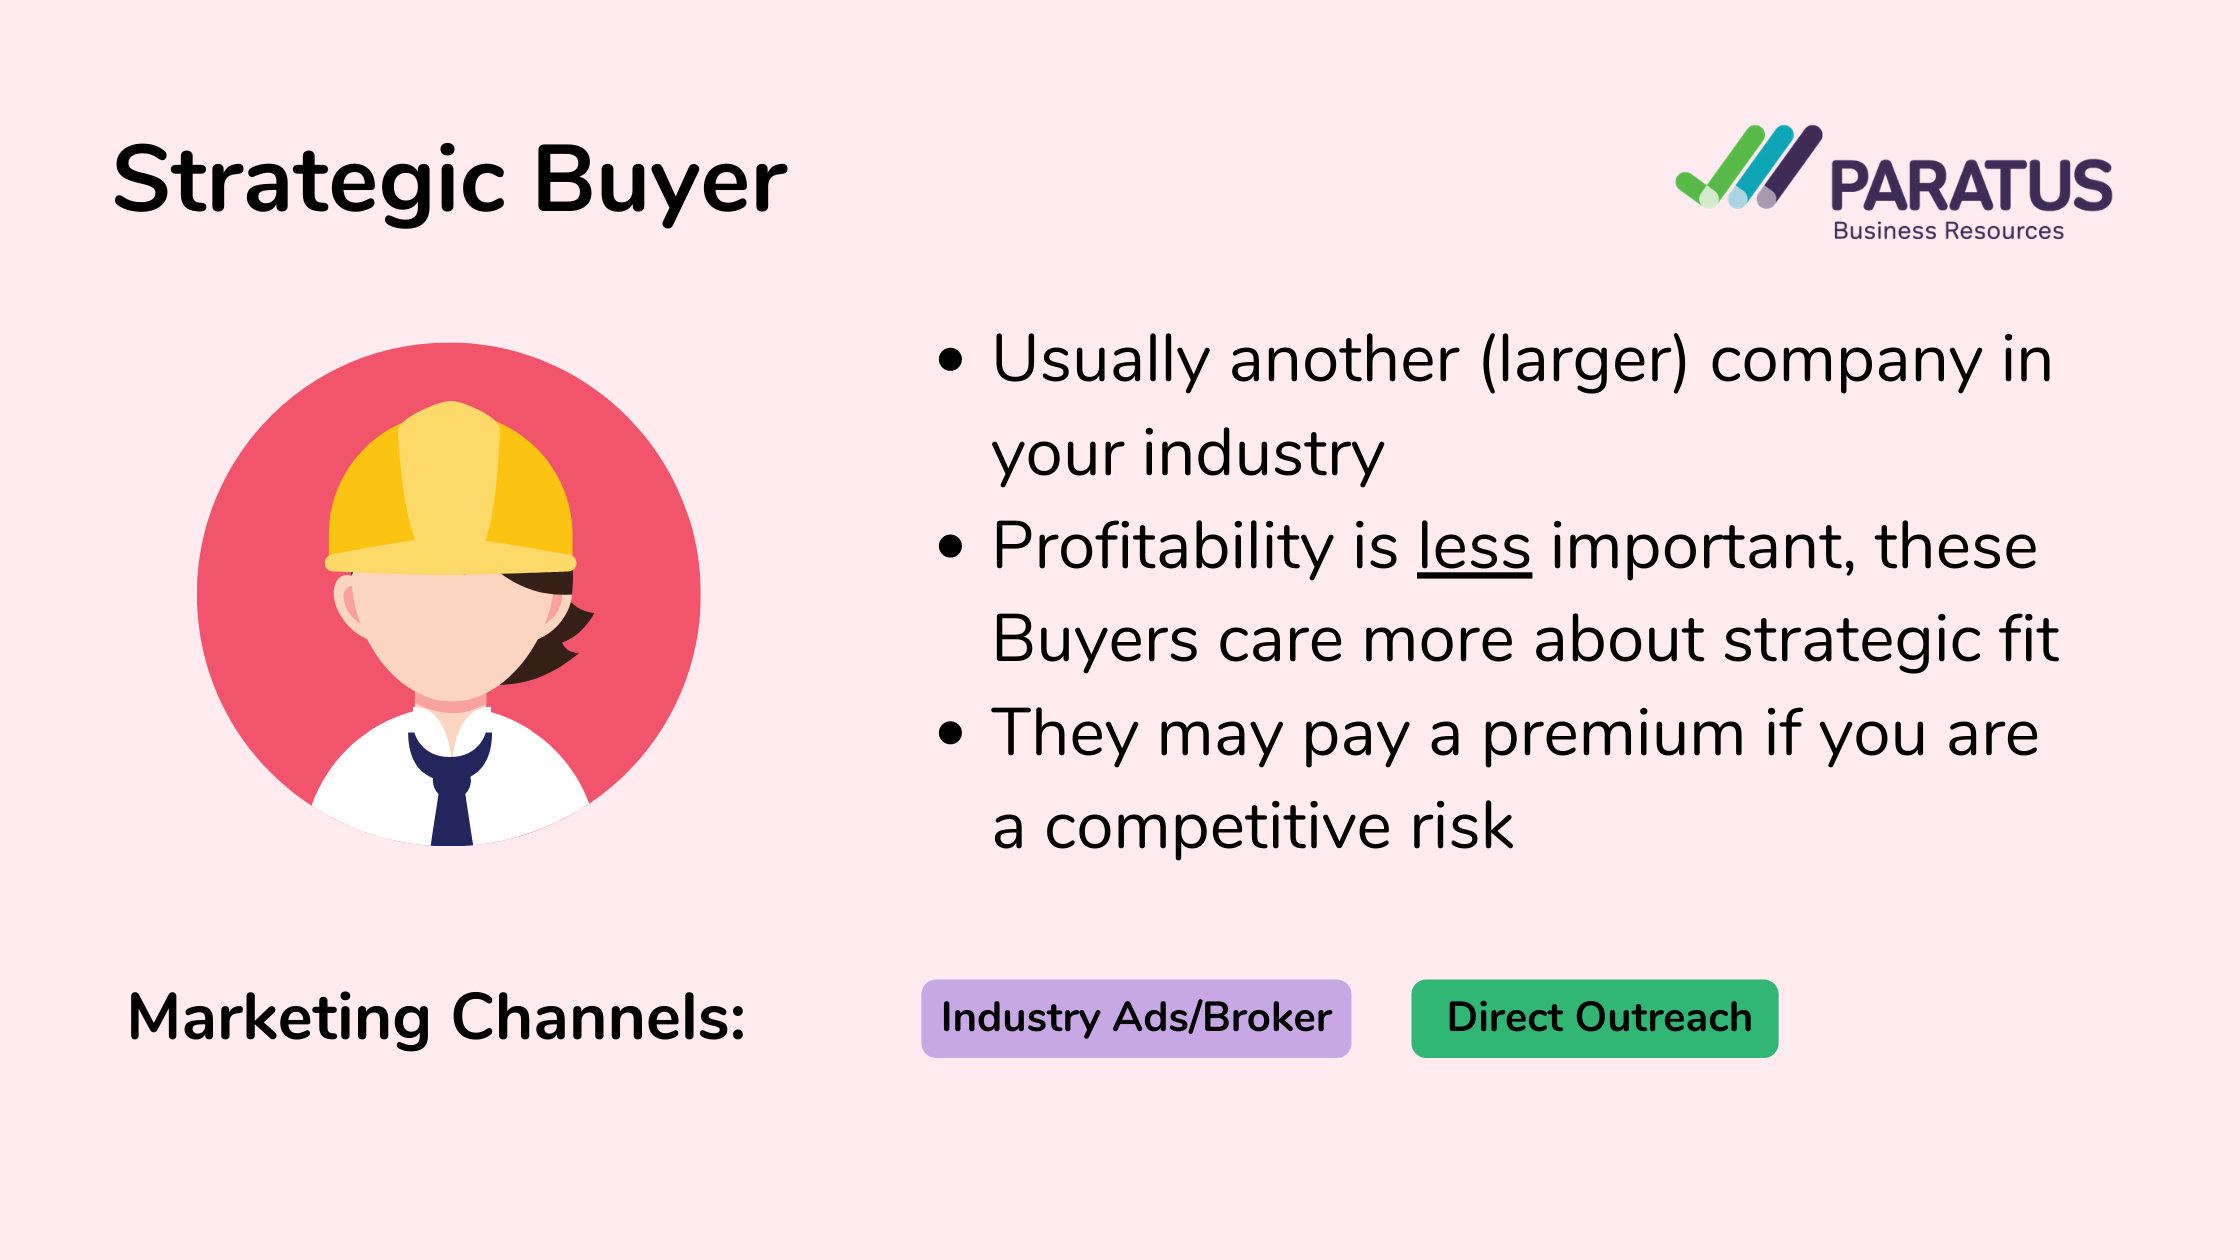 Image describing that strategic buyers are usually from a larger company, care less about profitability, and are willing to pay a premium